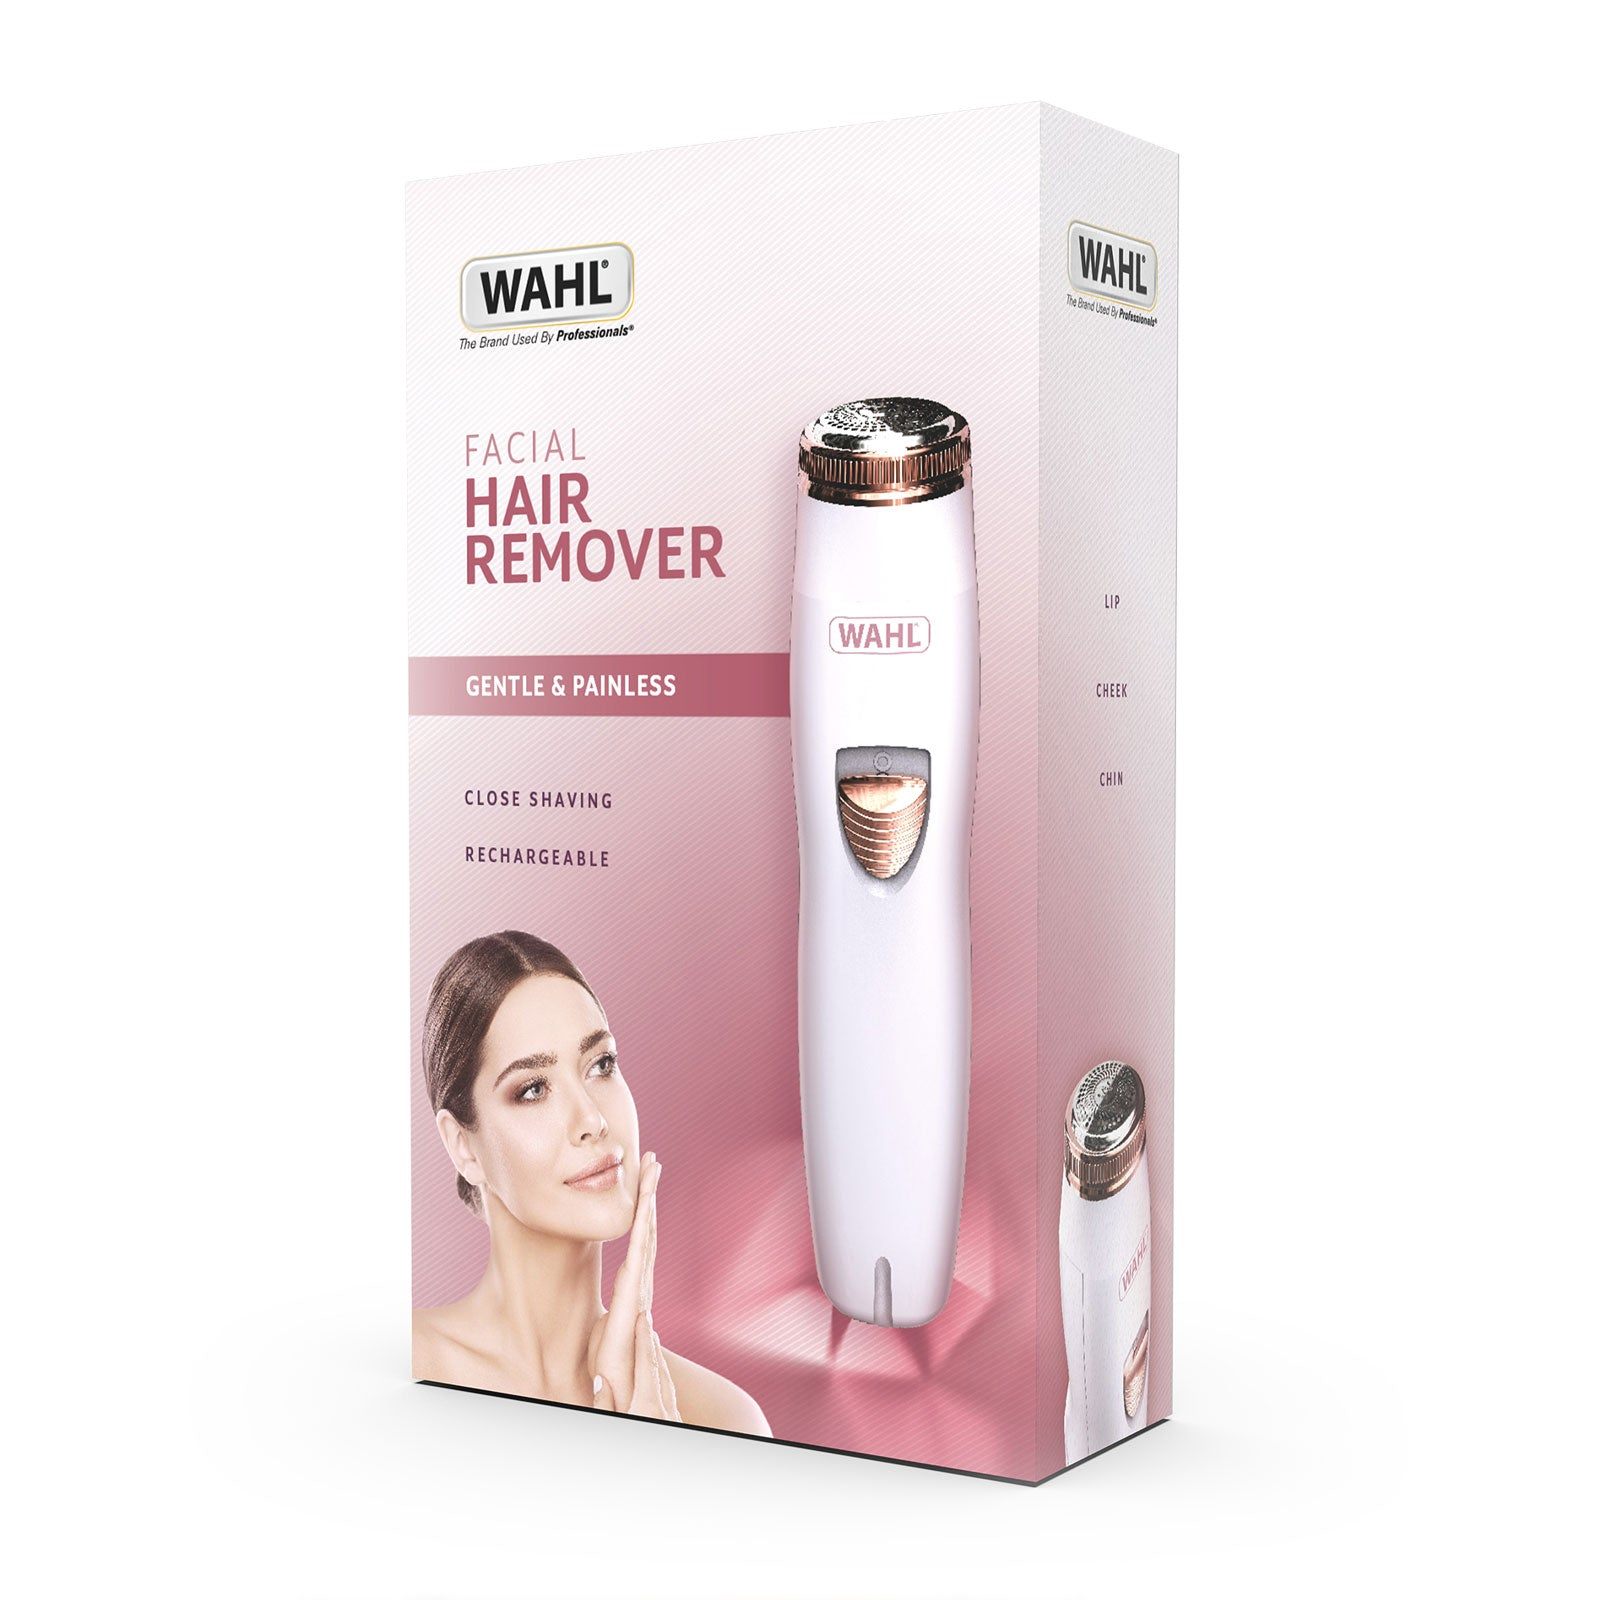 WAHL Female Facial Hair Remover Trimmer Kit